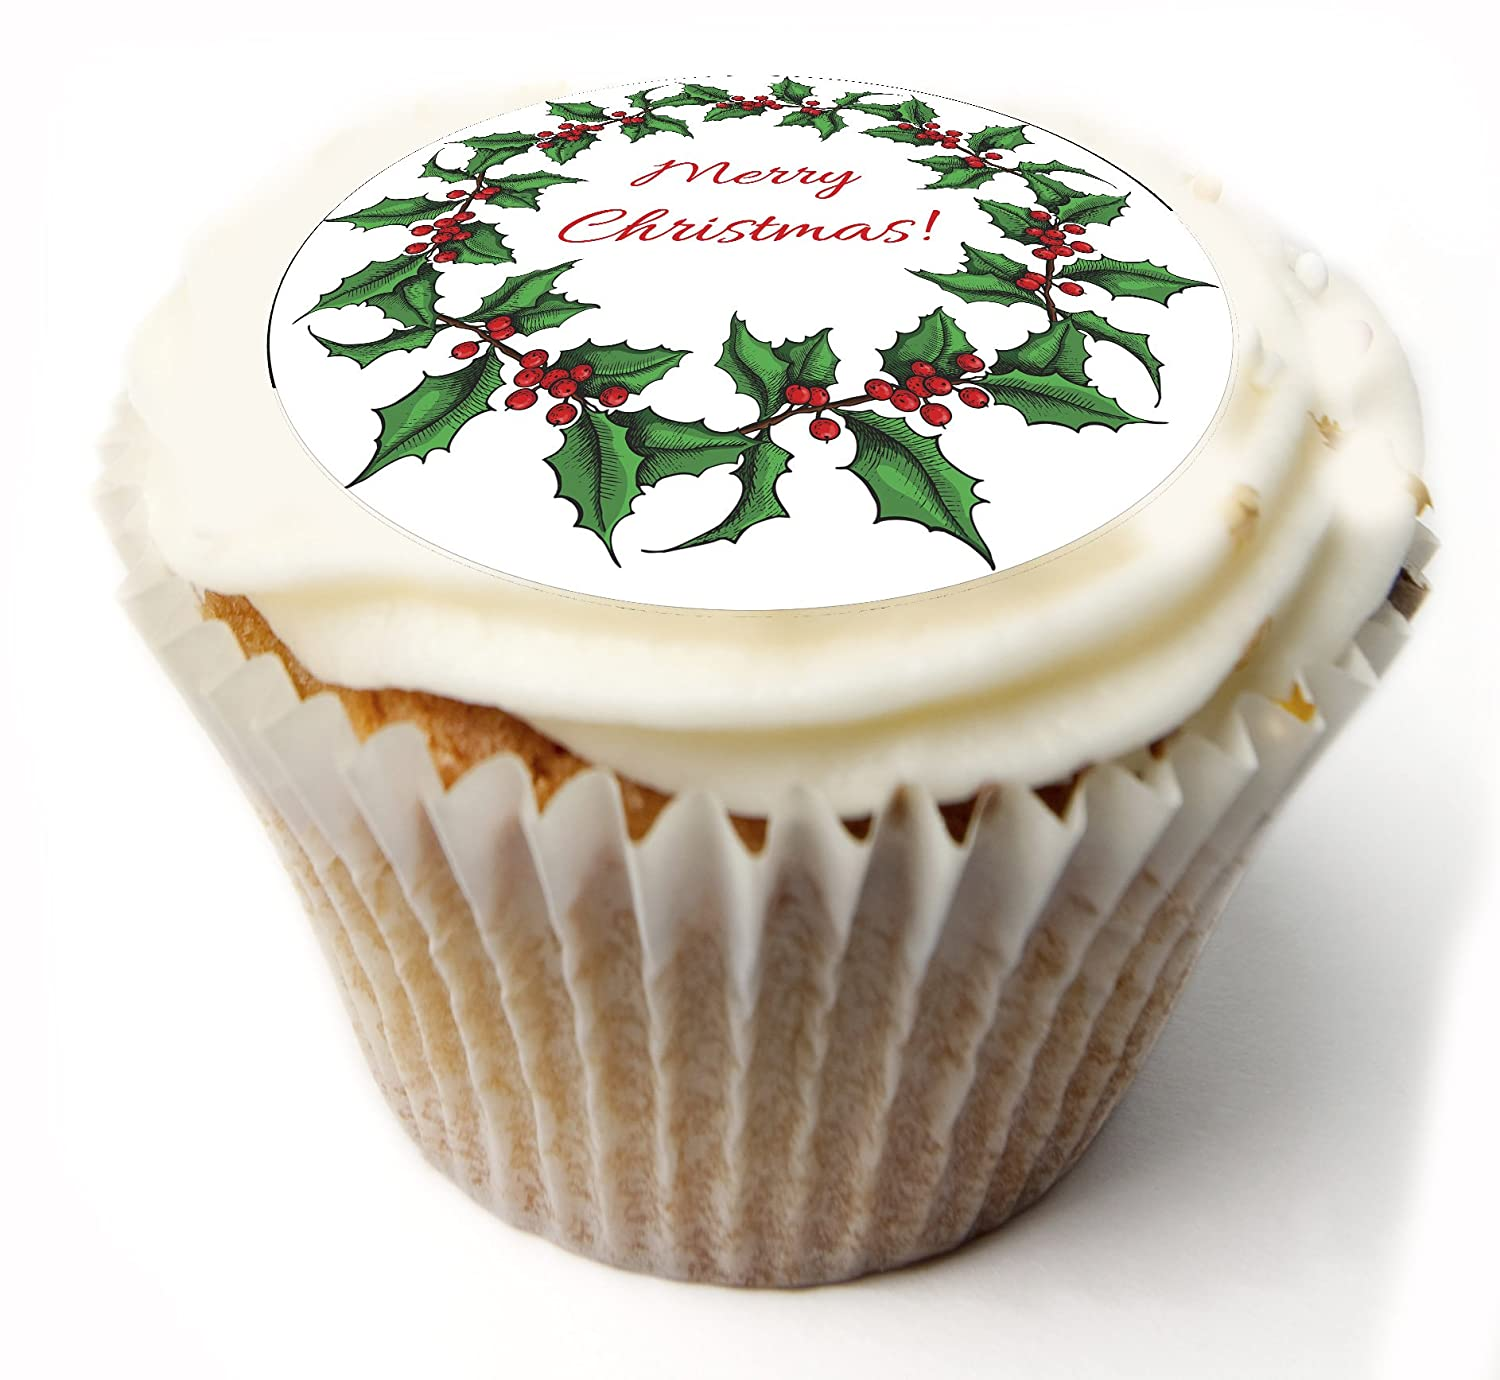 Christmas Cupcake Toppers Merry Christmas Fairy Cake Toppers Muffin Cake Toppers PRE CUT Edible Icing Frosting Sheet or Rice paper Wafer. x 20 PRE CUT 1.75 Inch. Ideal for Christmas party, Christmas cake, Christmas decoration etc